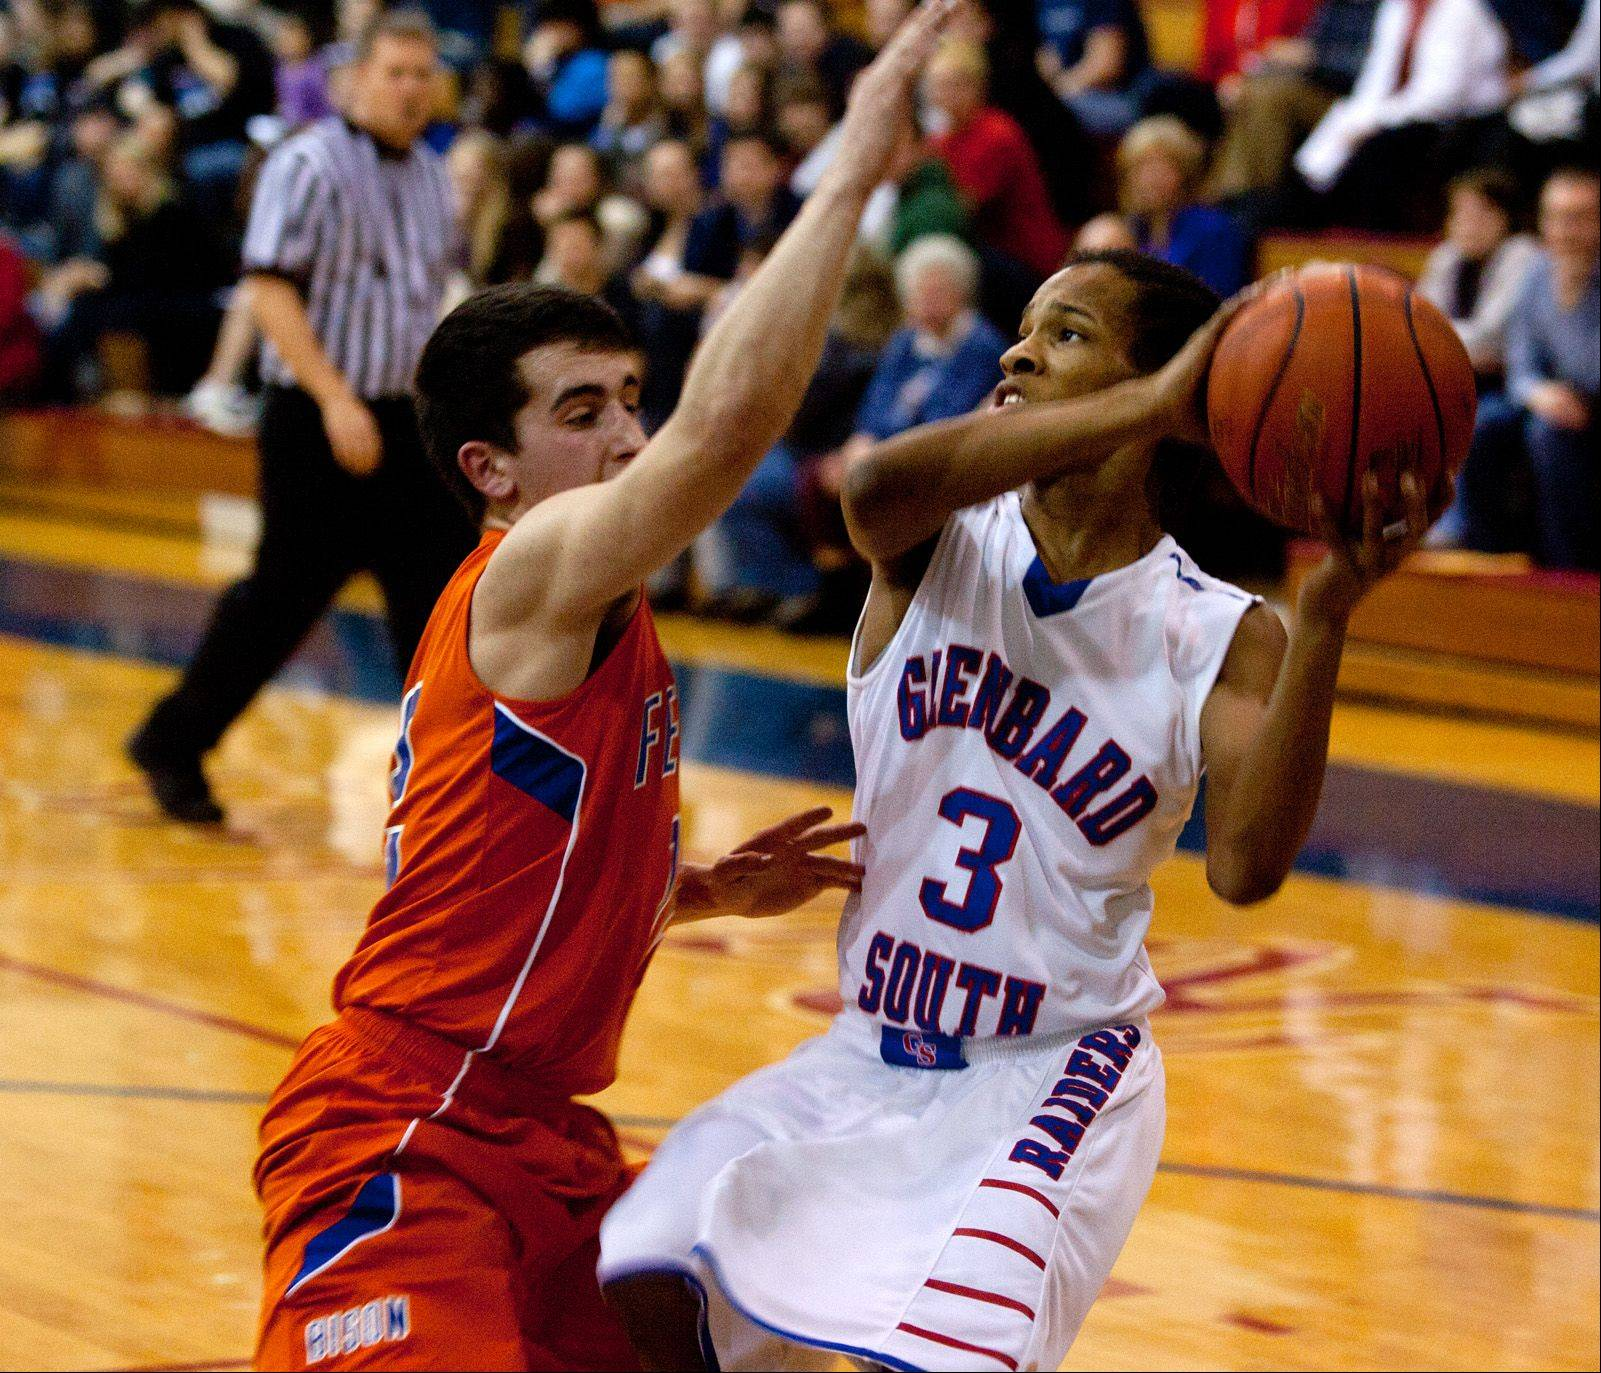 Glenbard South�s Chaun Rickette eyes the basket for a pair of his 16 first quarter points against Fenton.